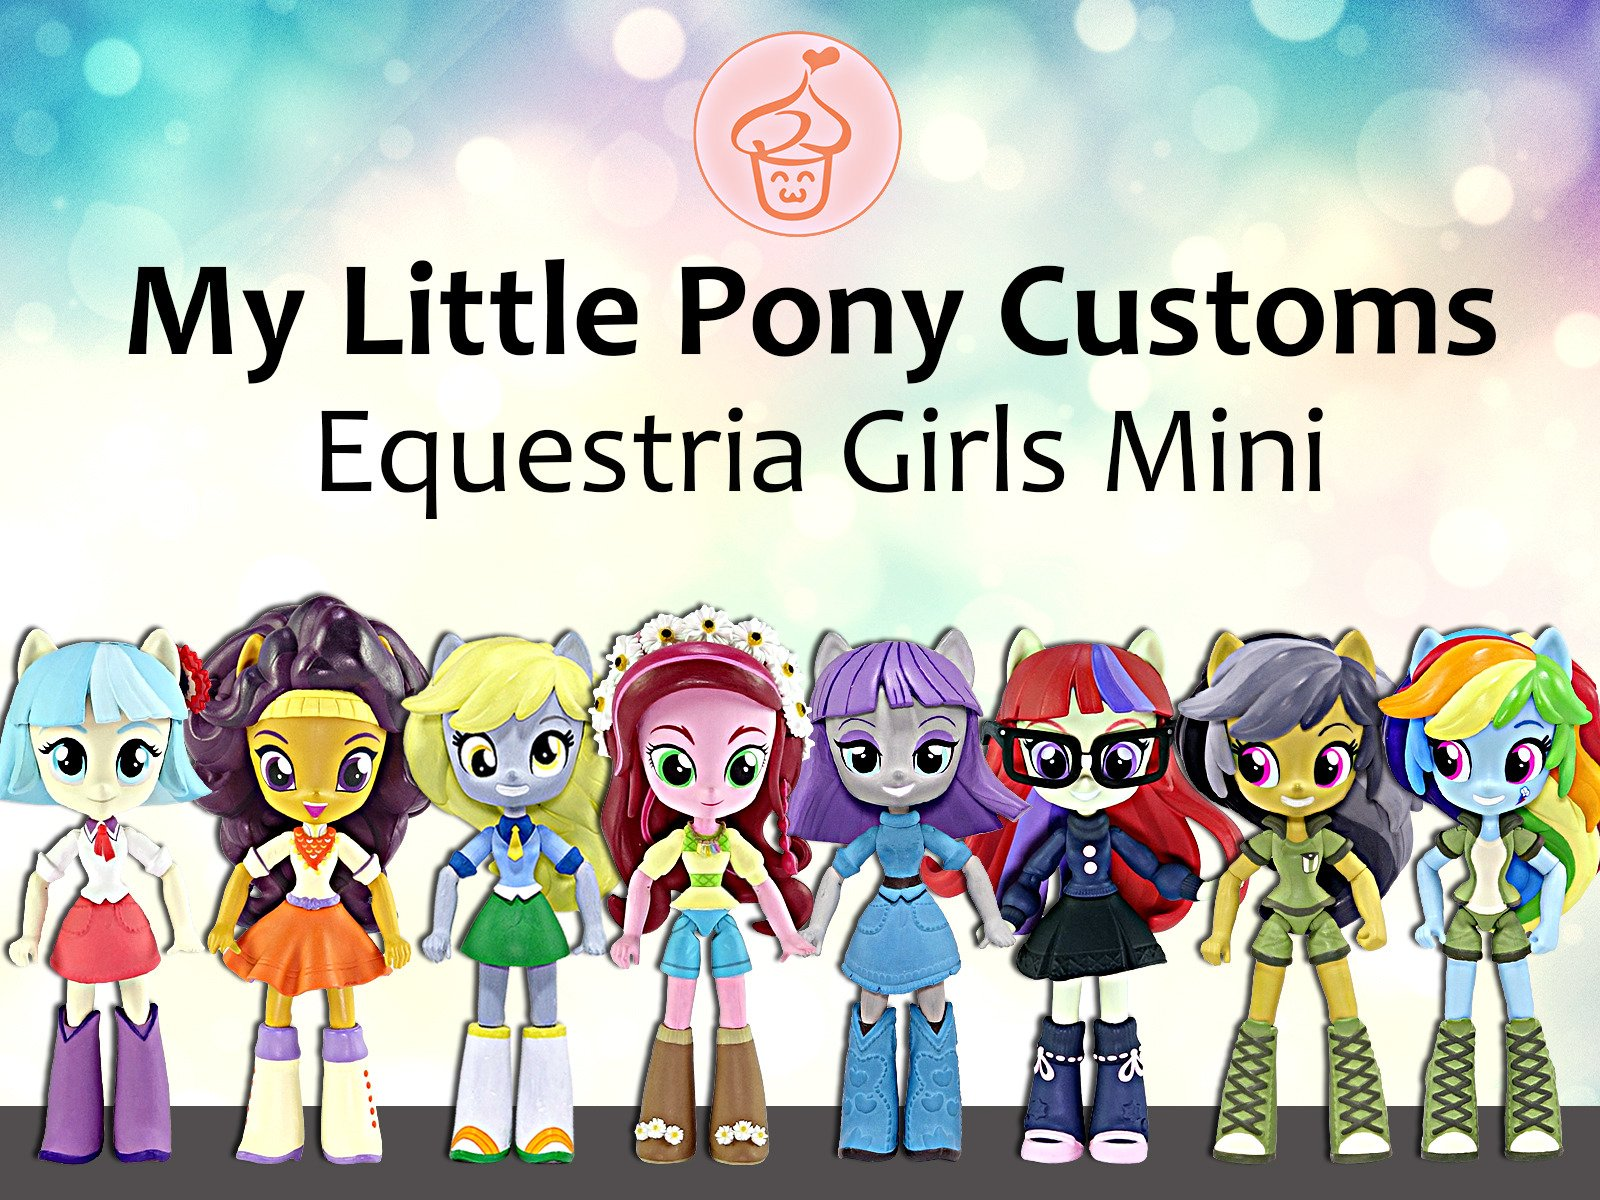 My Little Pony Customs Equestria Girls Mini